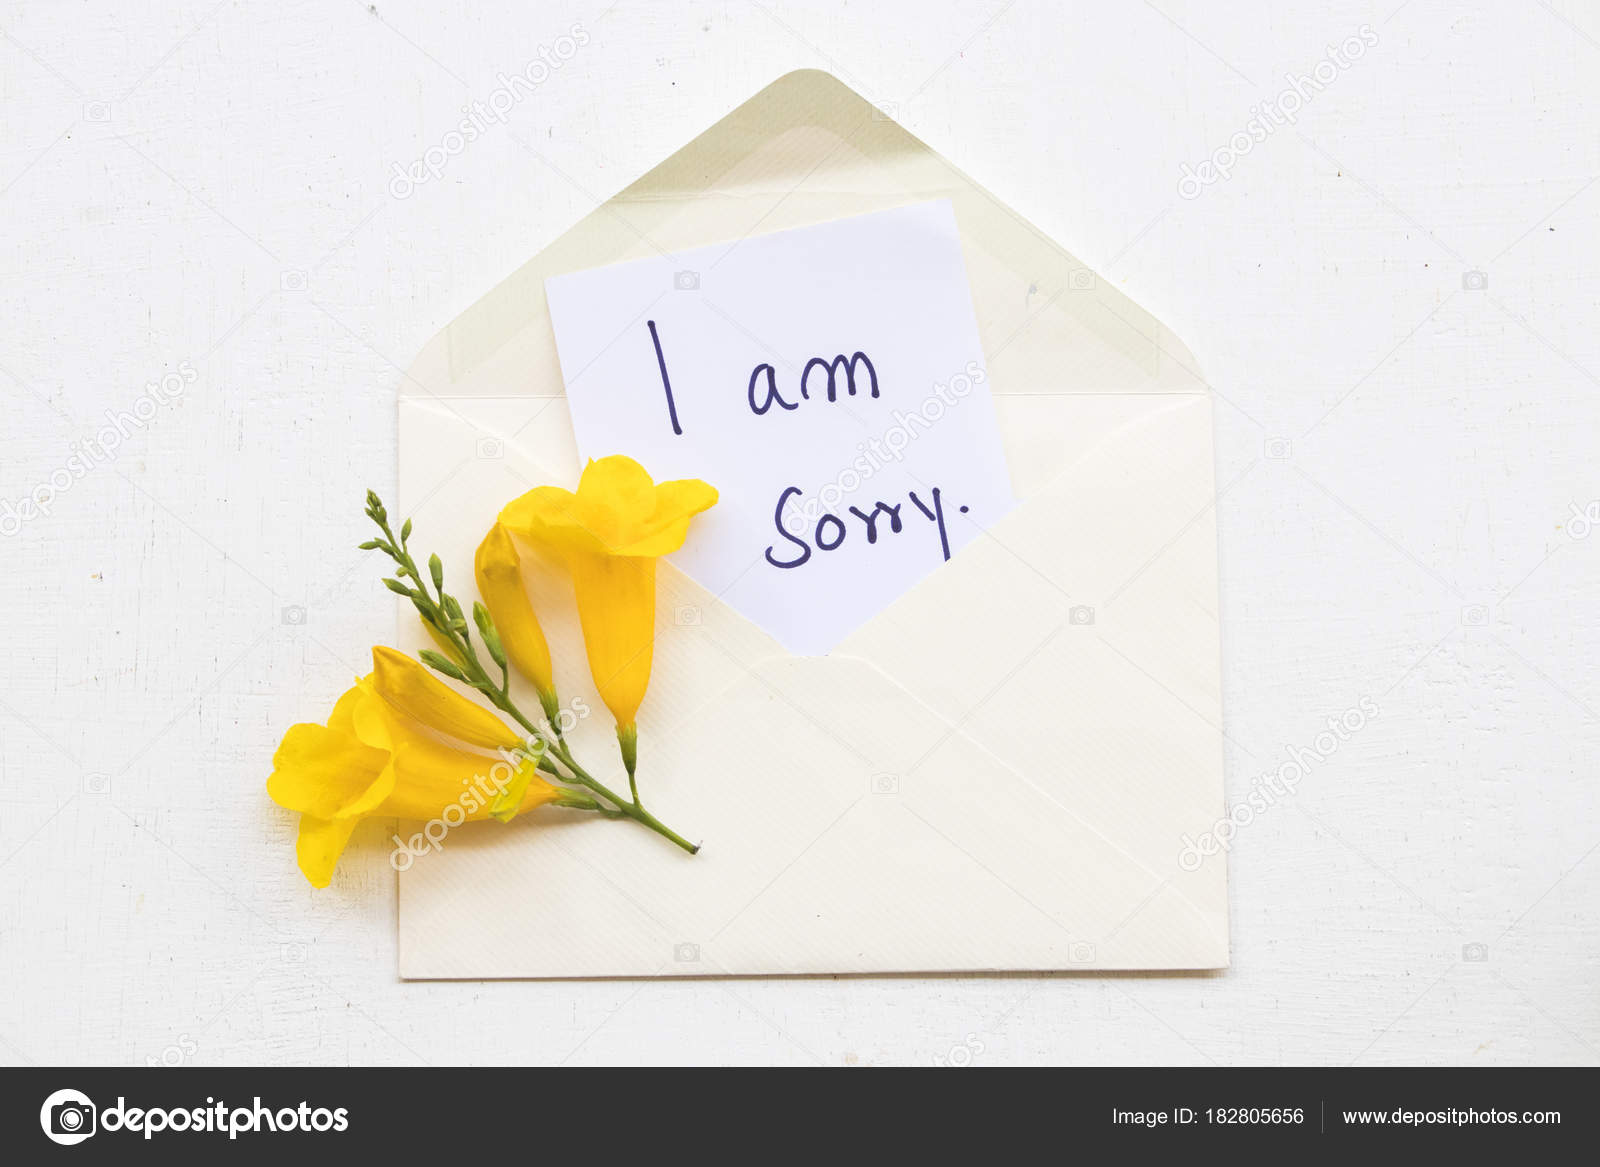 Pictures Stucky Sorry Message Card Yellow Flower Envelope